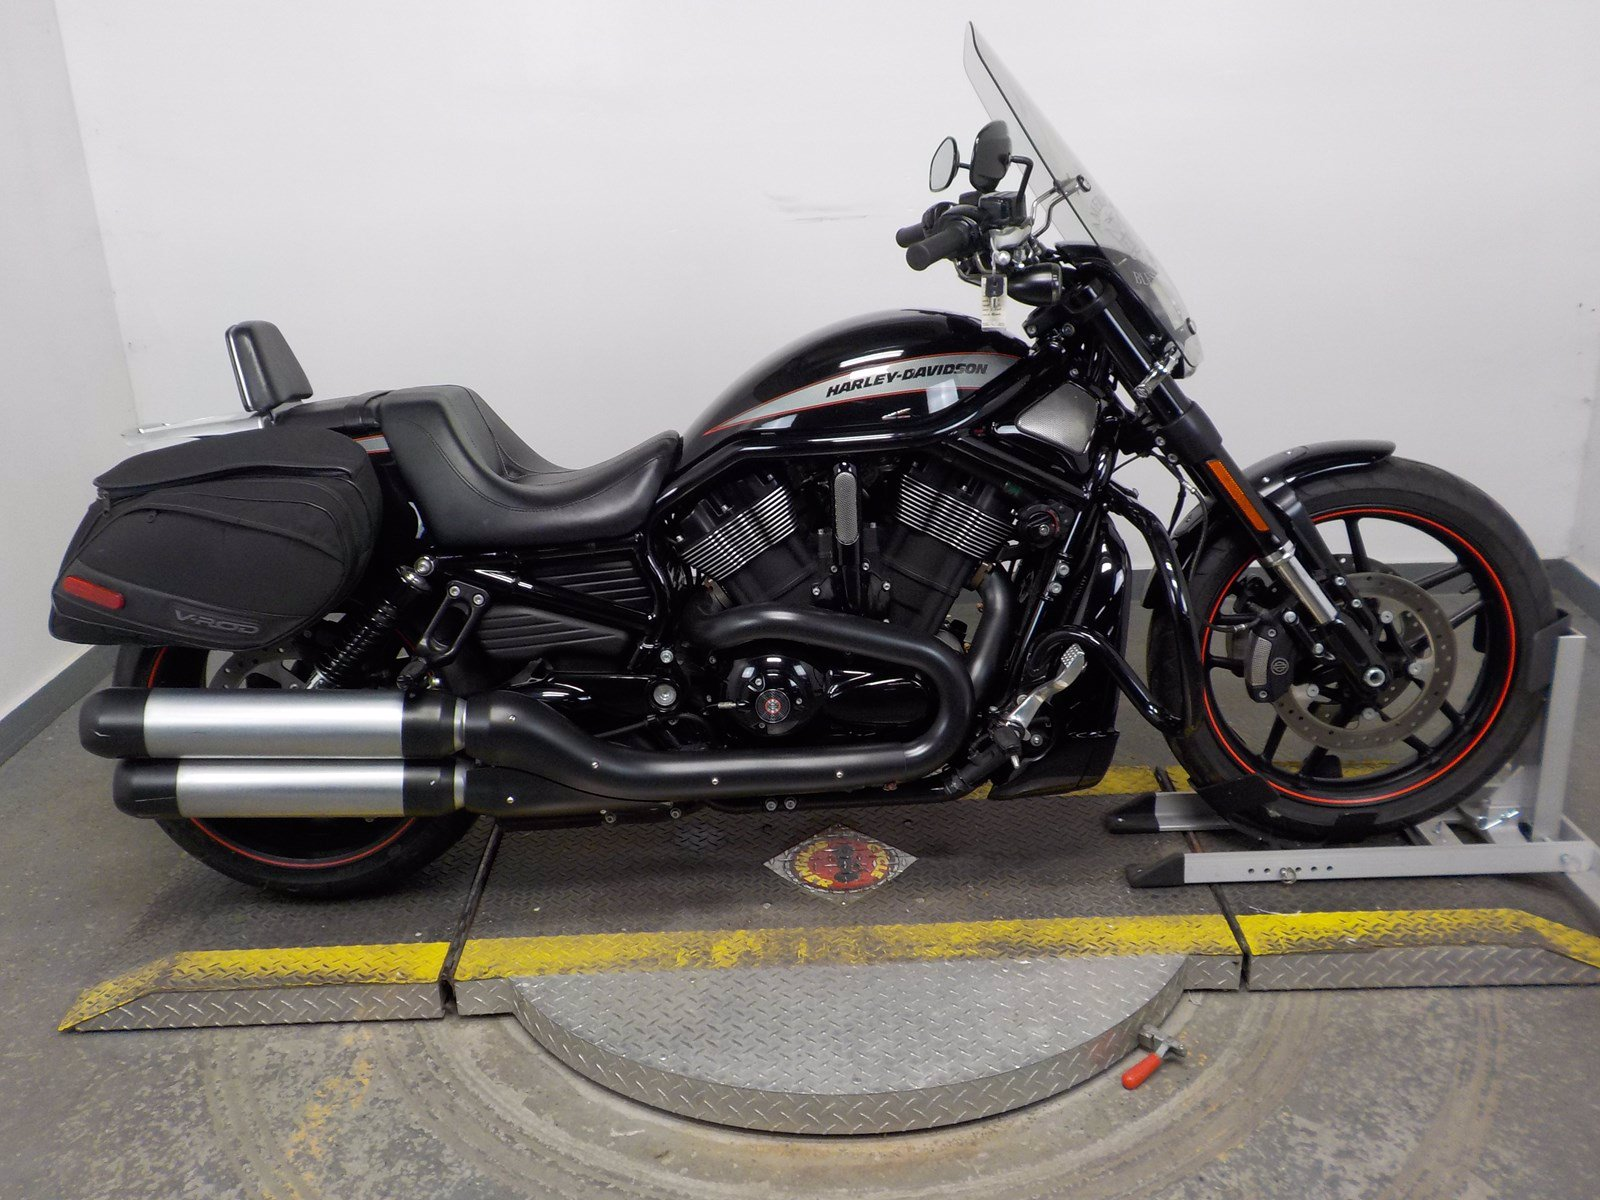 Pre-Owned 2015 Harley-Davidson V-Rod Night Rod Special VRSCDX